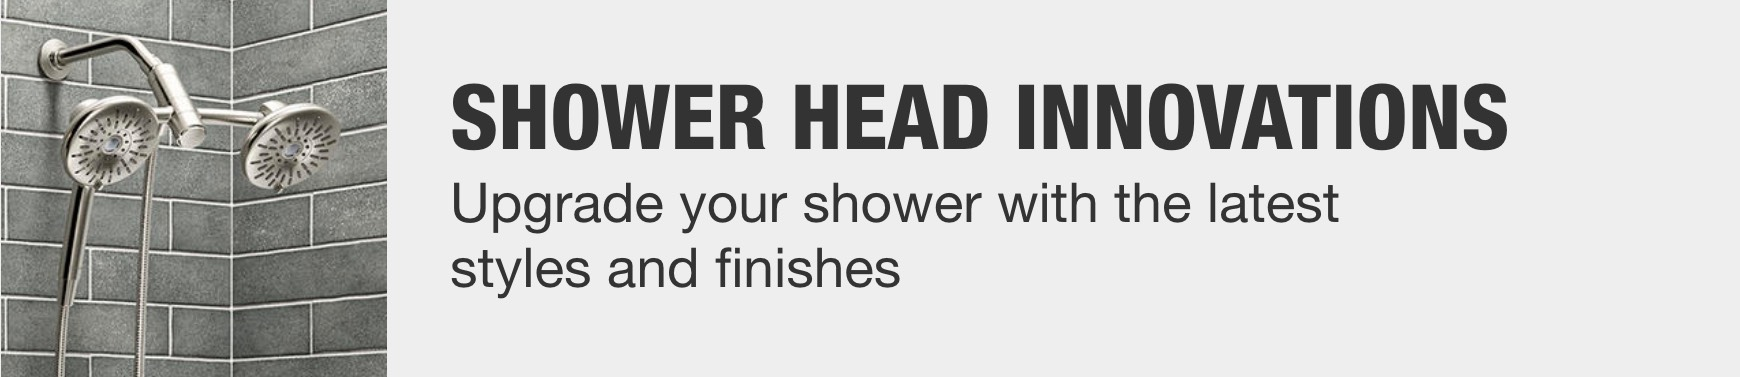 Banner image. Upgrade your shower with the latest styles and finishes.